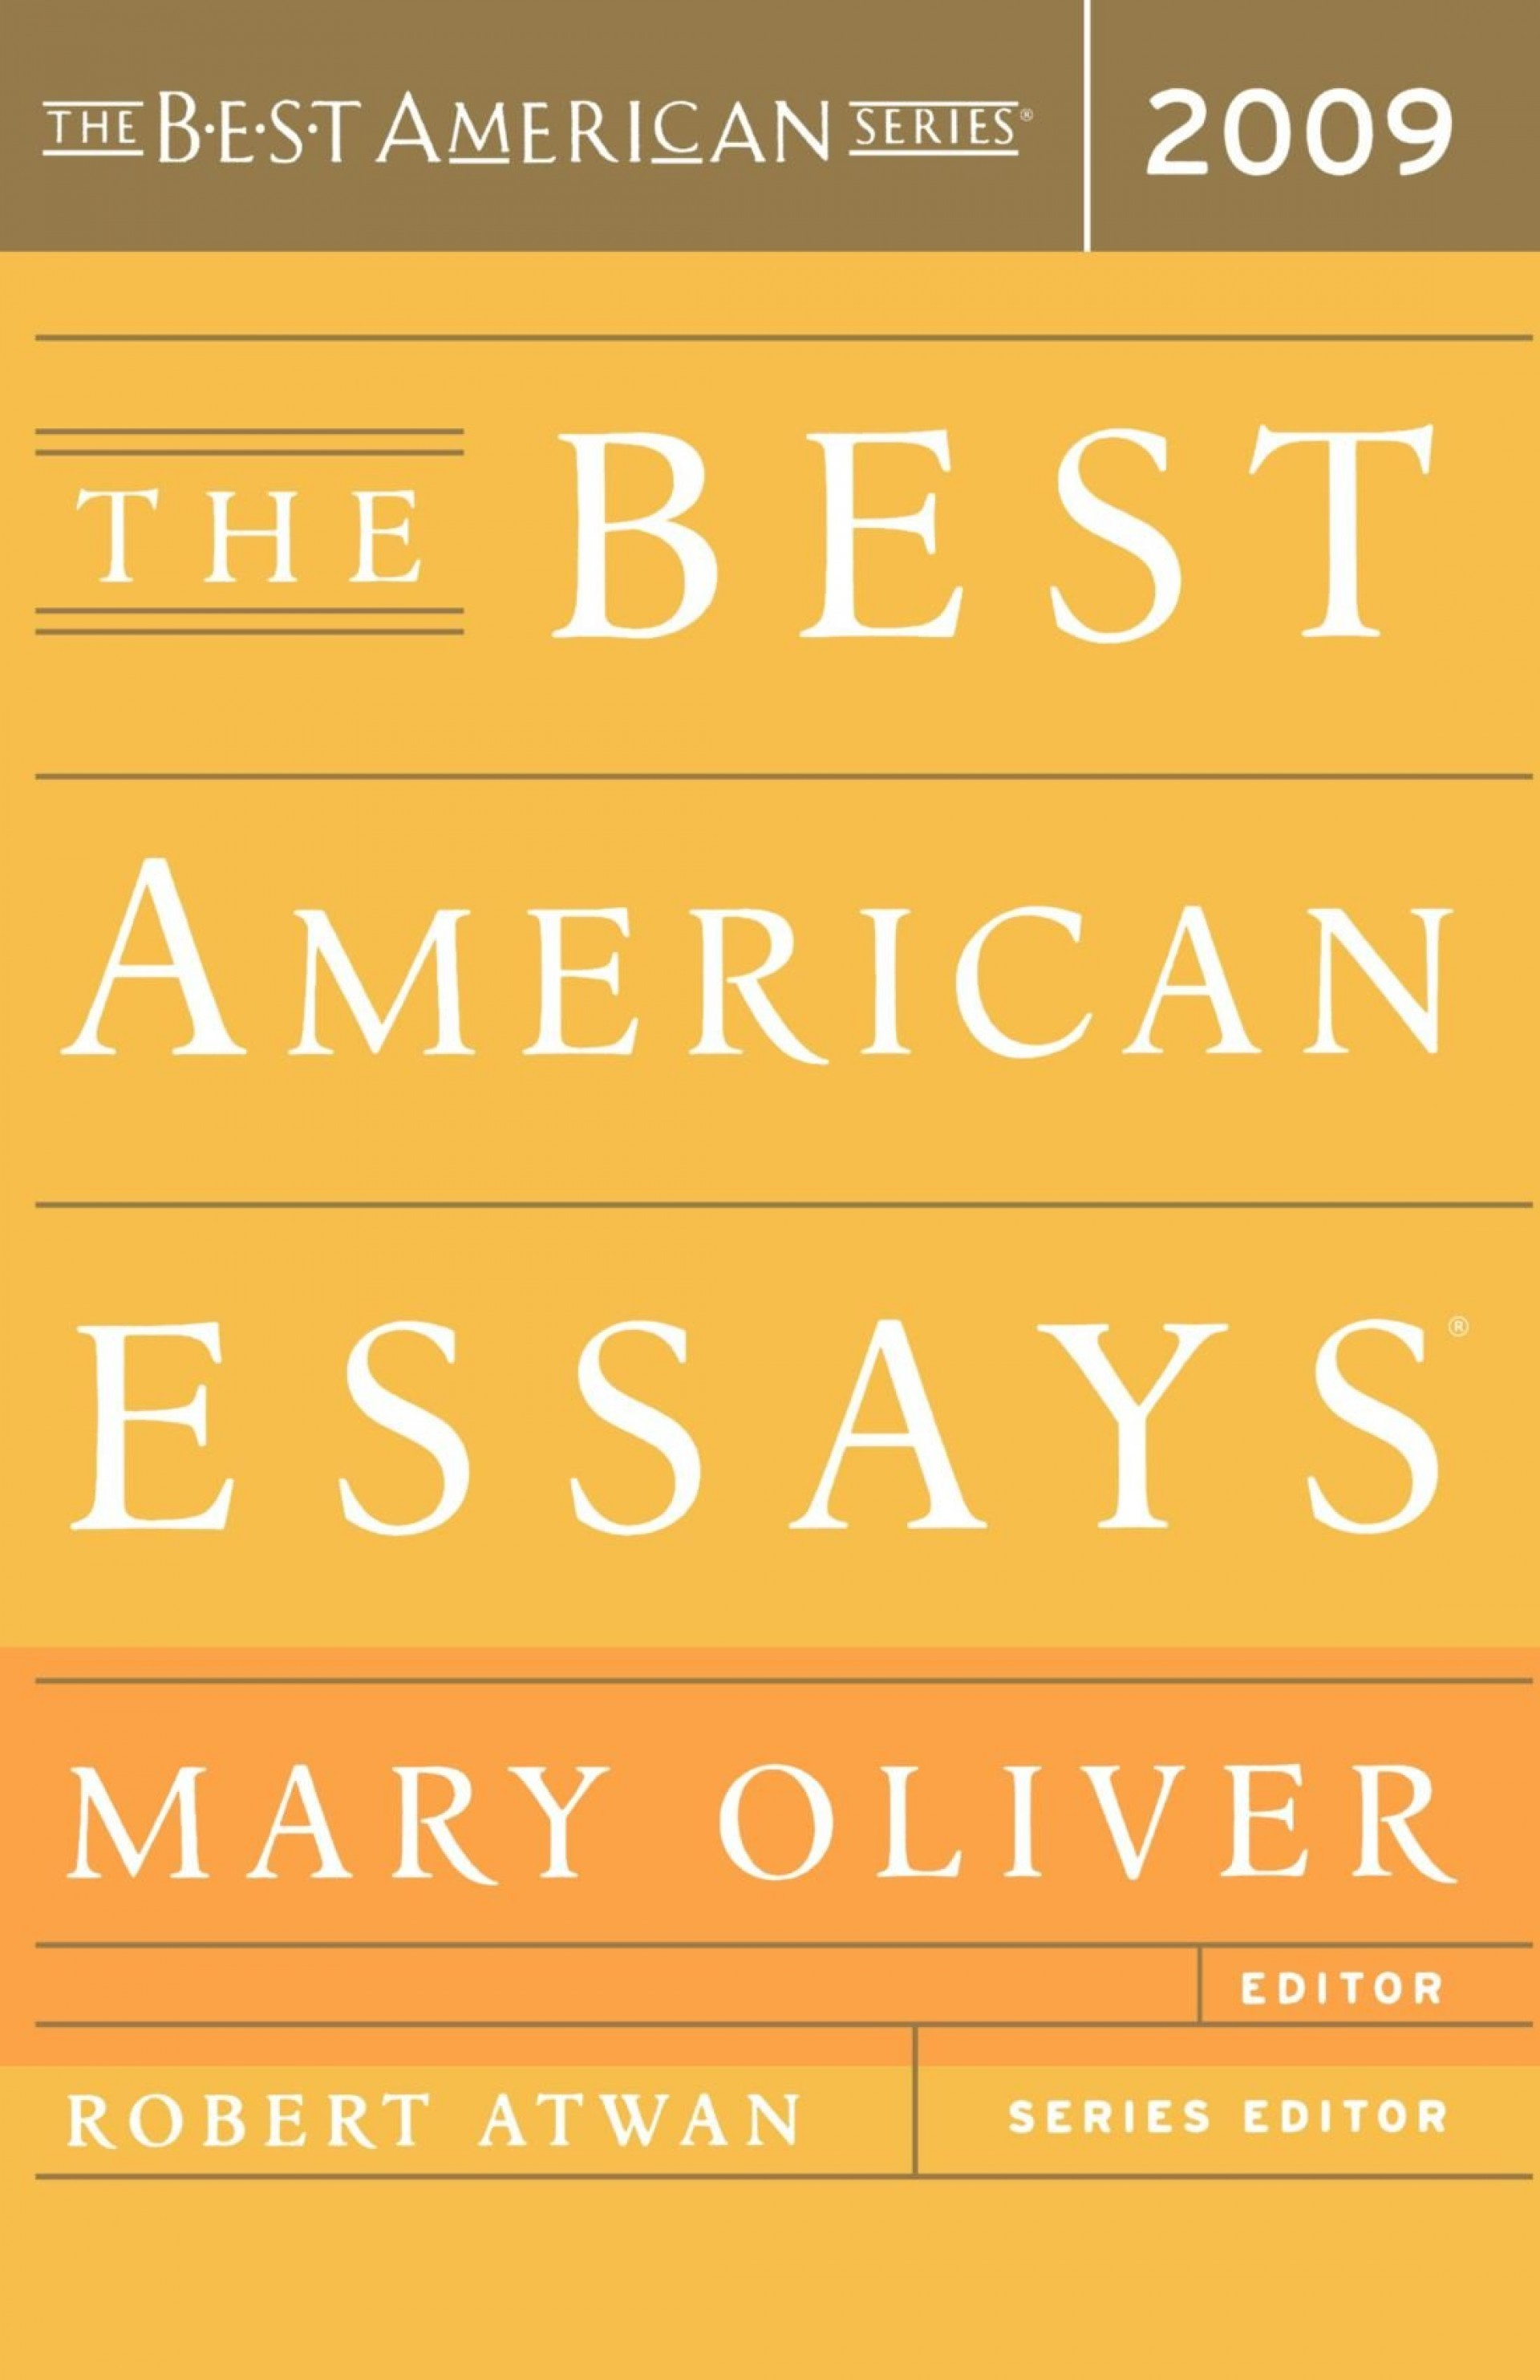 008 617qb5slhfl Essay Example The Best American Wonderful Essays 2018 List Pdf Download 2017 Free 1920